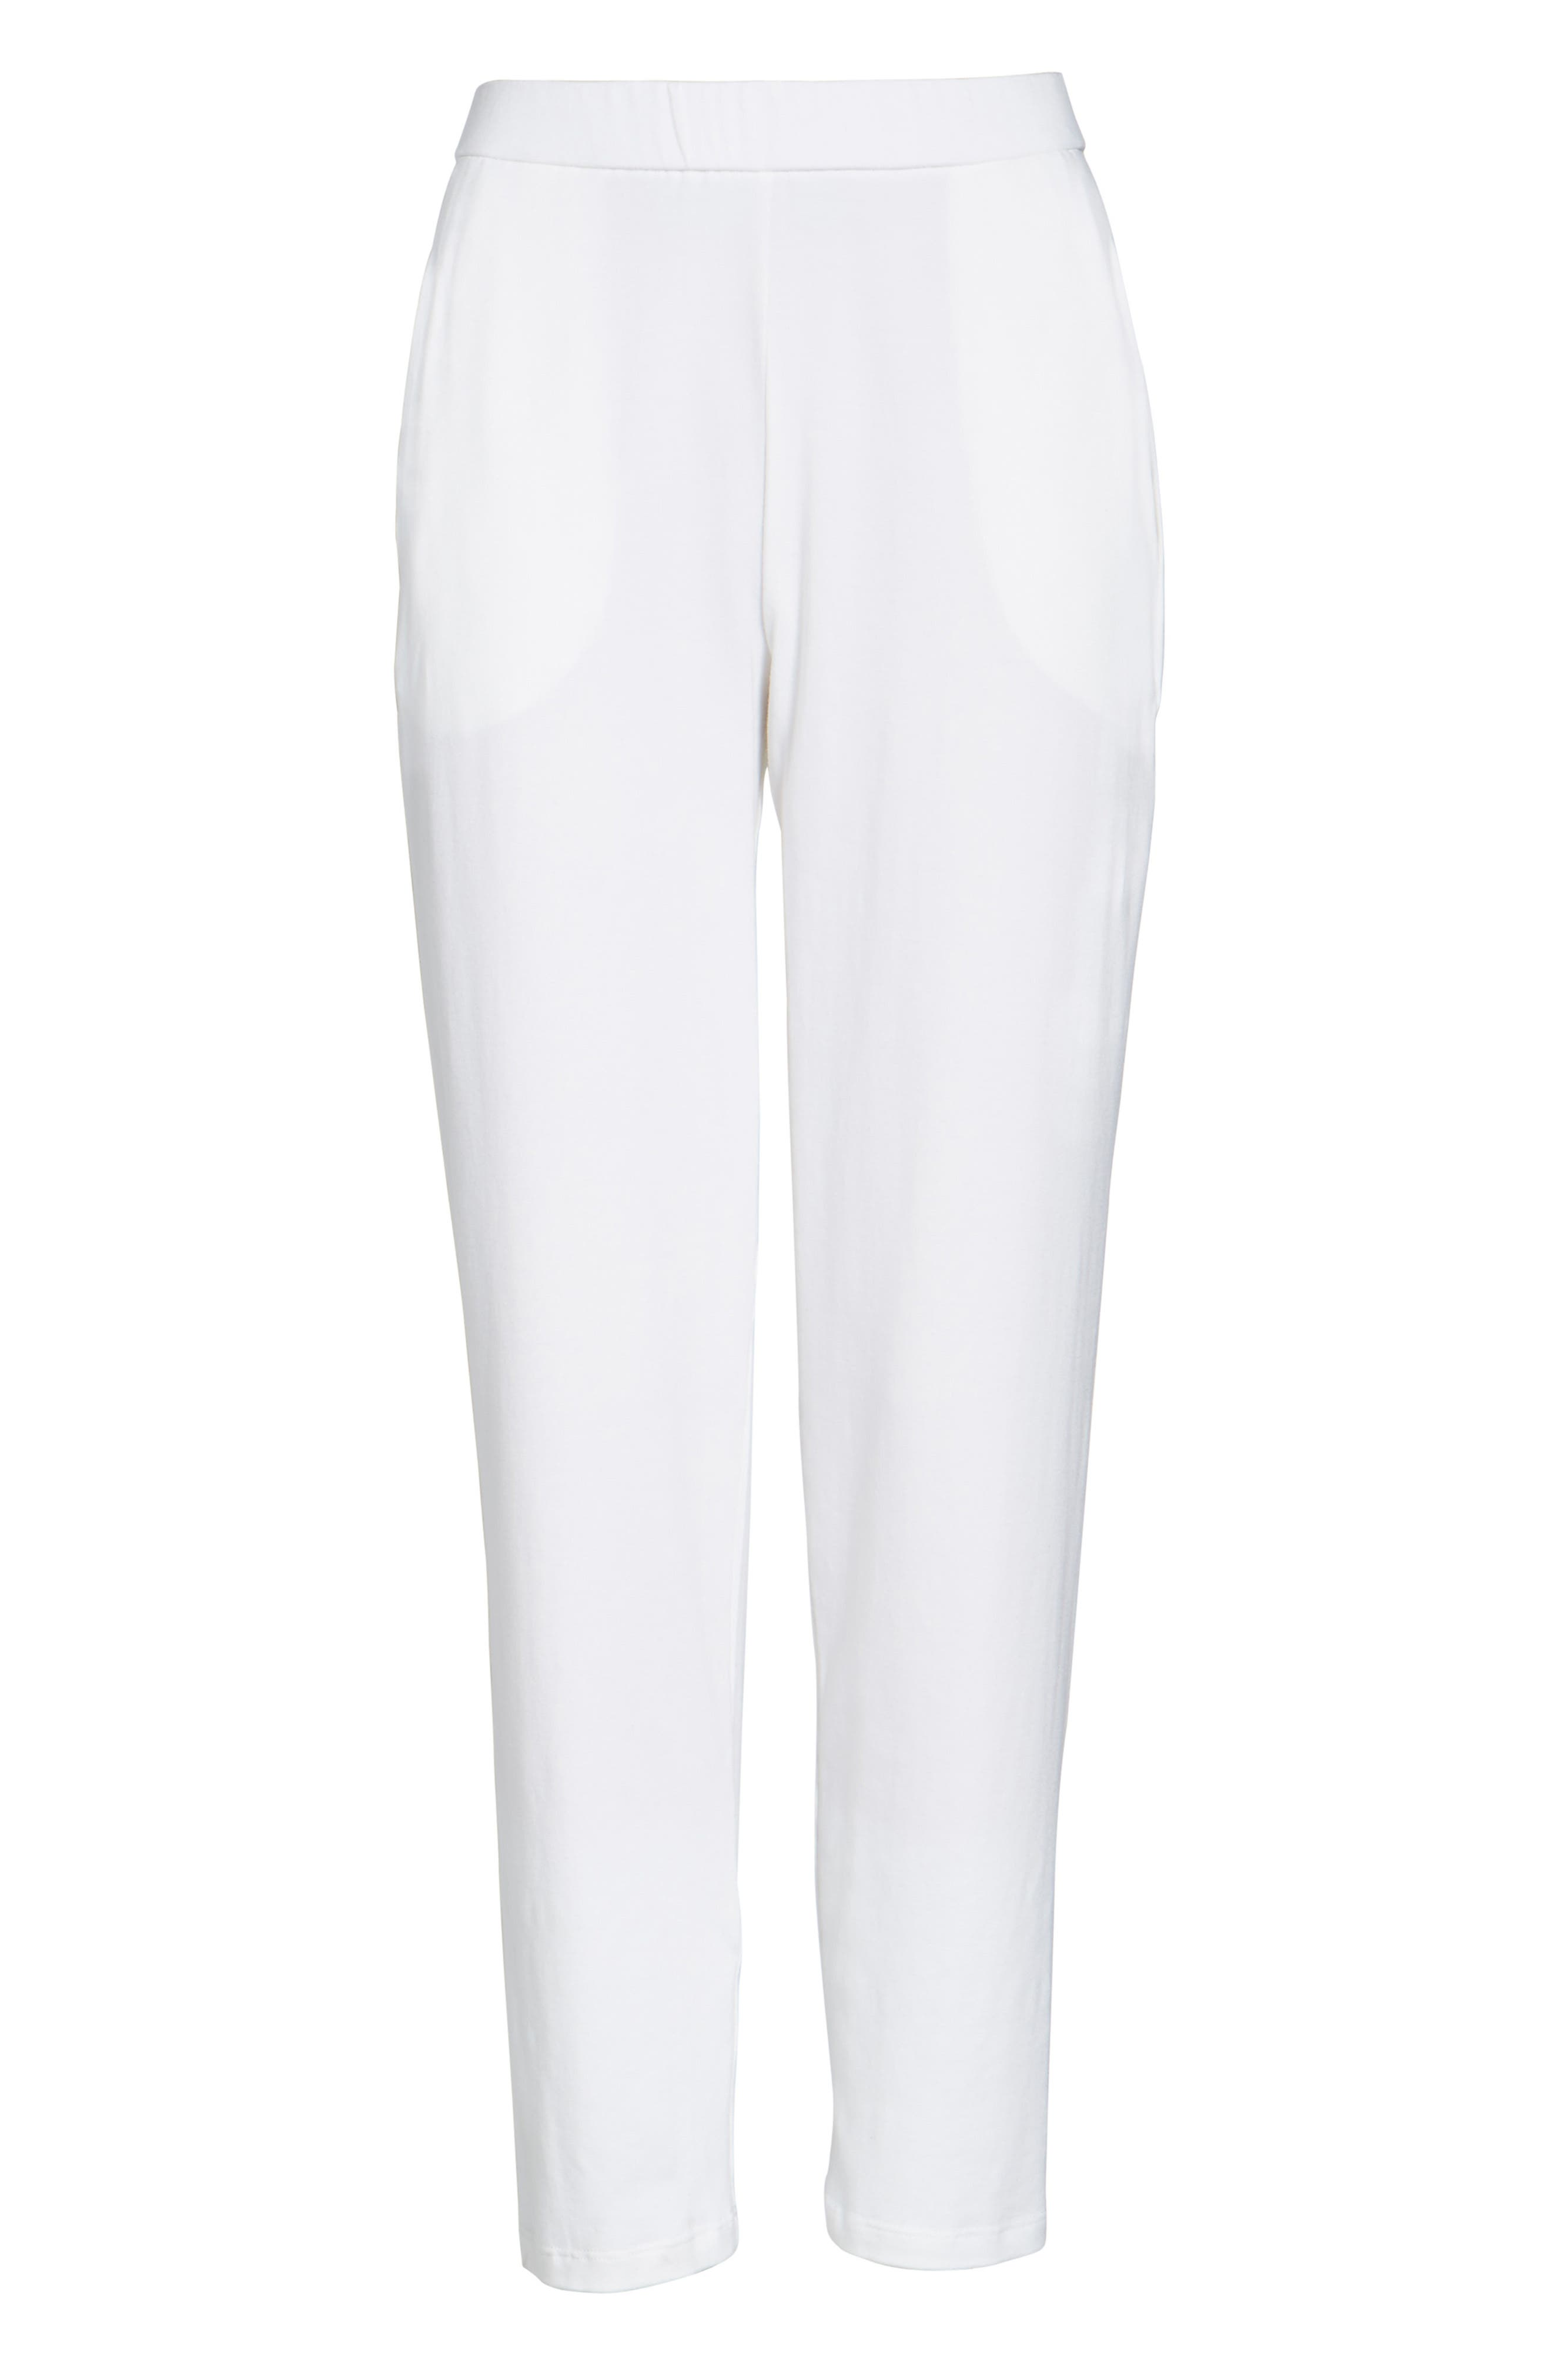 Stretch Organic Cotton Slim Slouchy Ankle Pants,                         Main,                         color, White